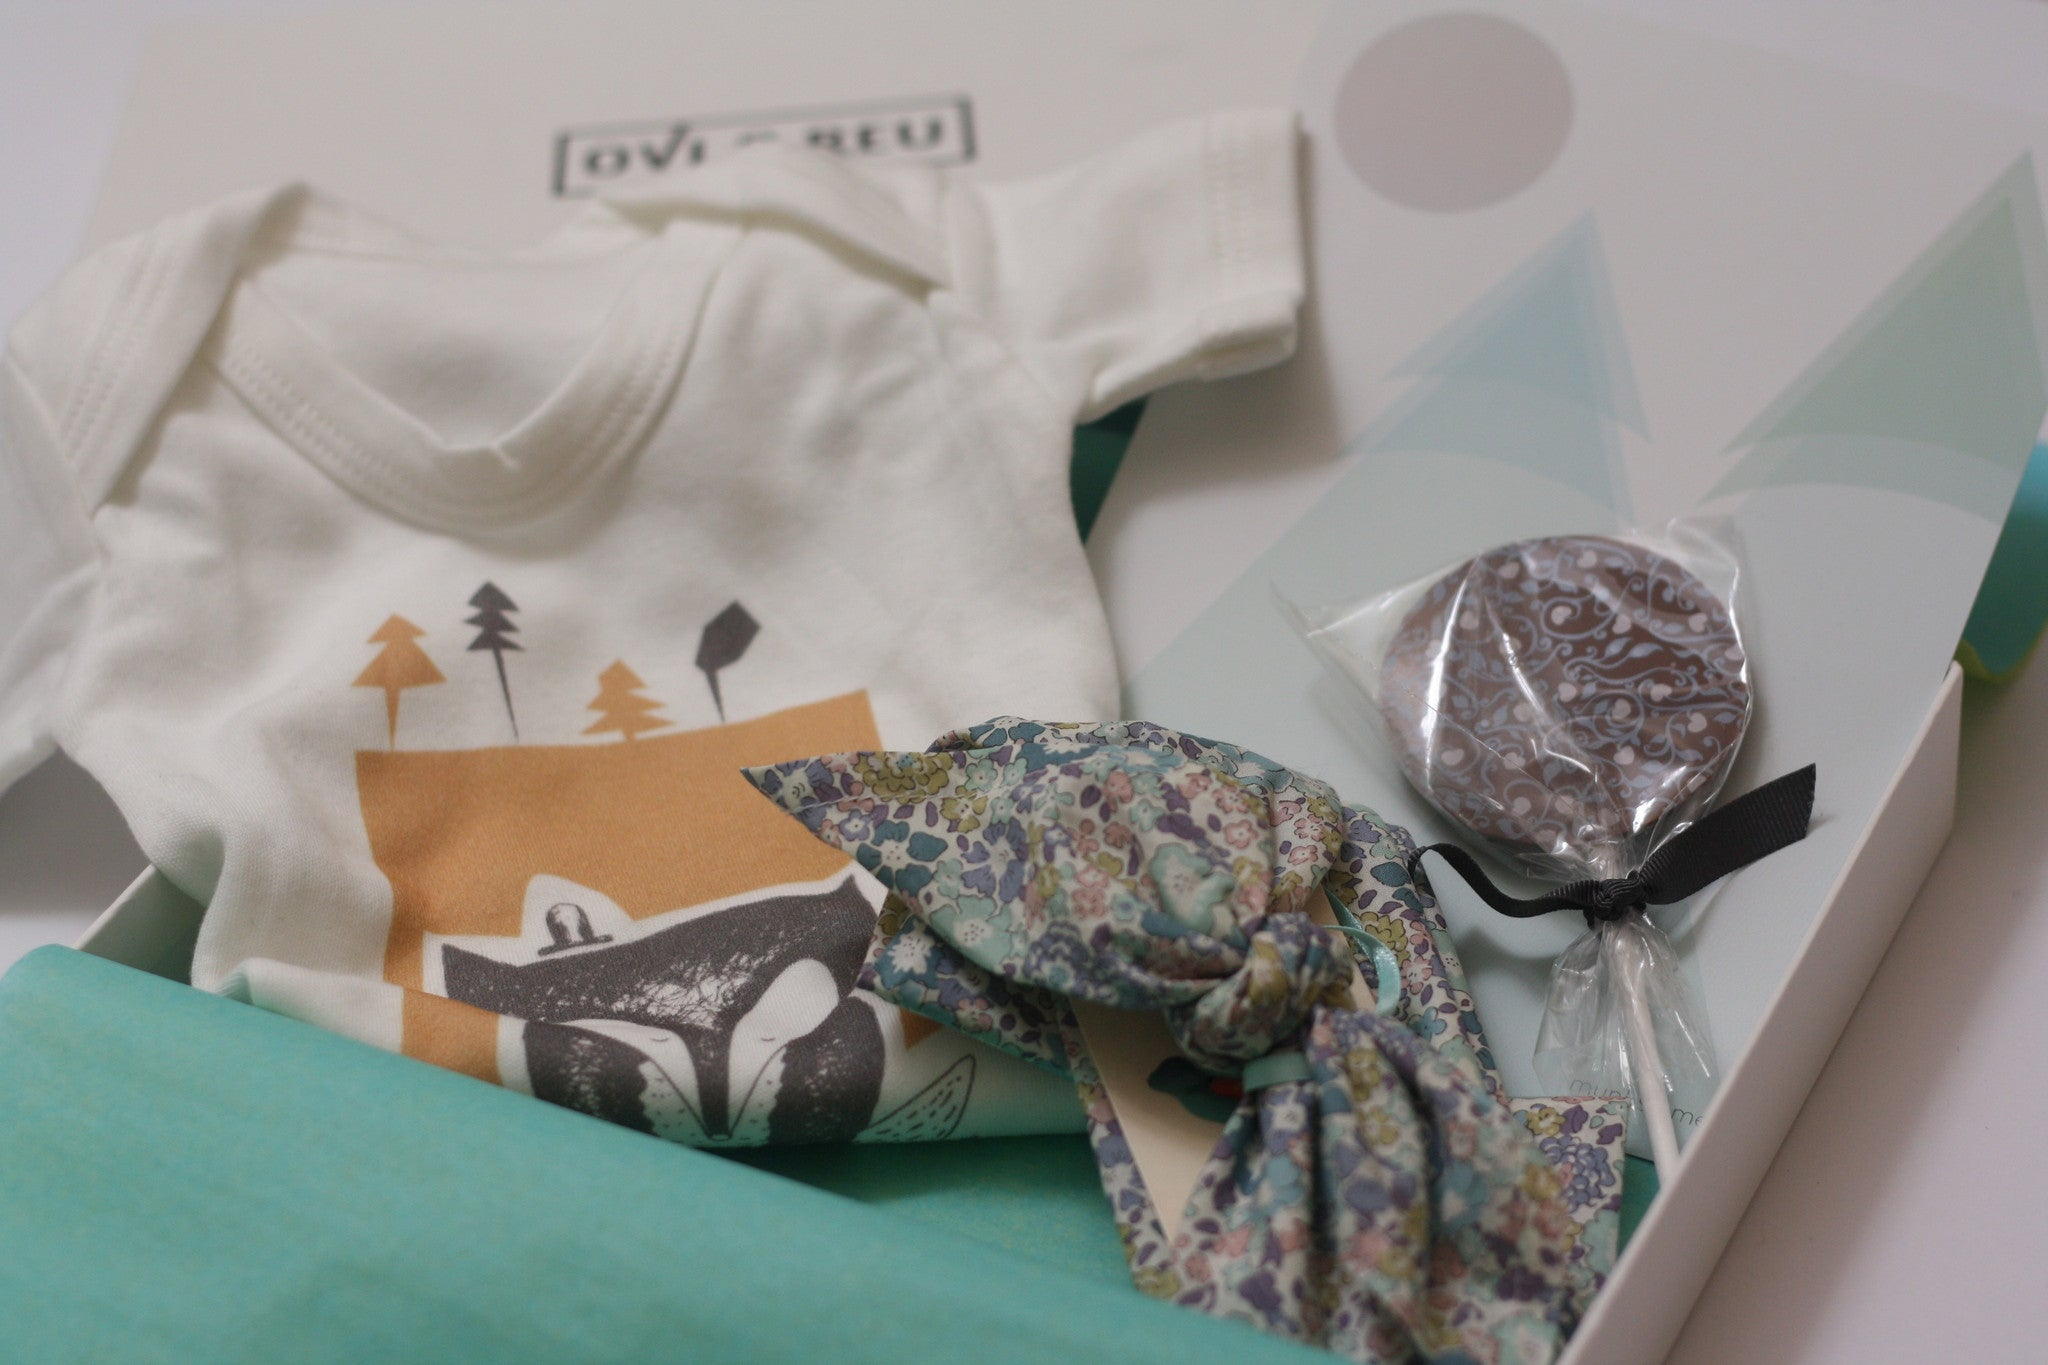 The Country Highlights Collection gift box for new and expectant mums from Ovi and Reu contains a fox baby vest, chocolate lolly, Liberty Print headscarf and mountains nursery print. Available from Wonder of Kin - Curating Independent Brands.